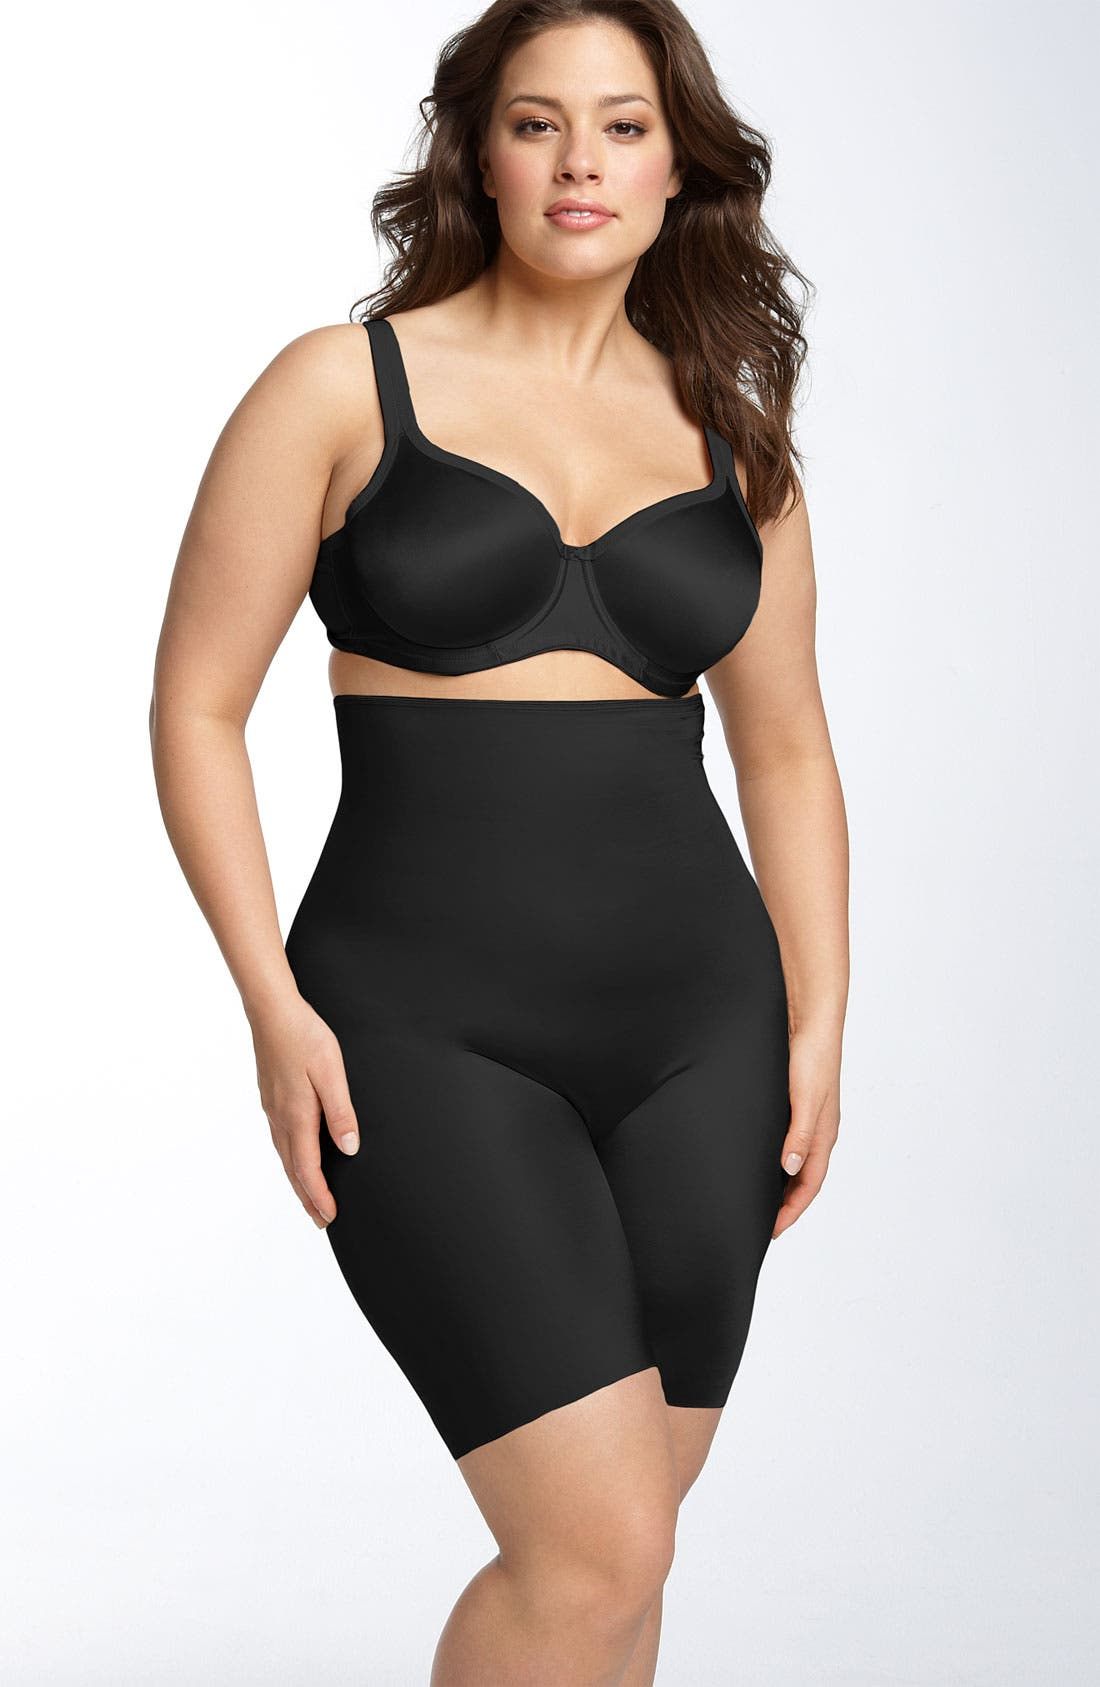 Alternate Image 1 Selected - SPANX® 'Slimplicity' High Waist Shaper (Plus Size)